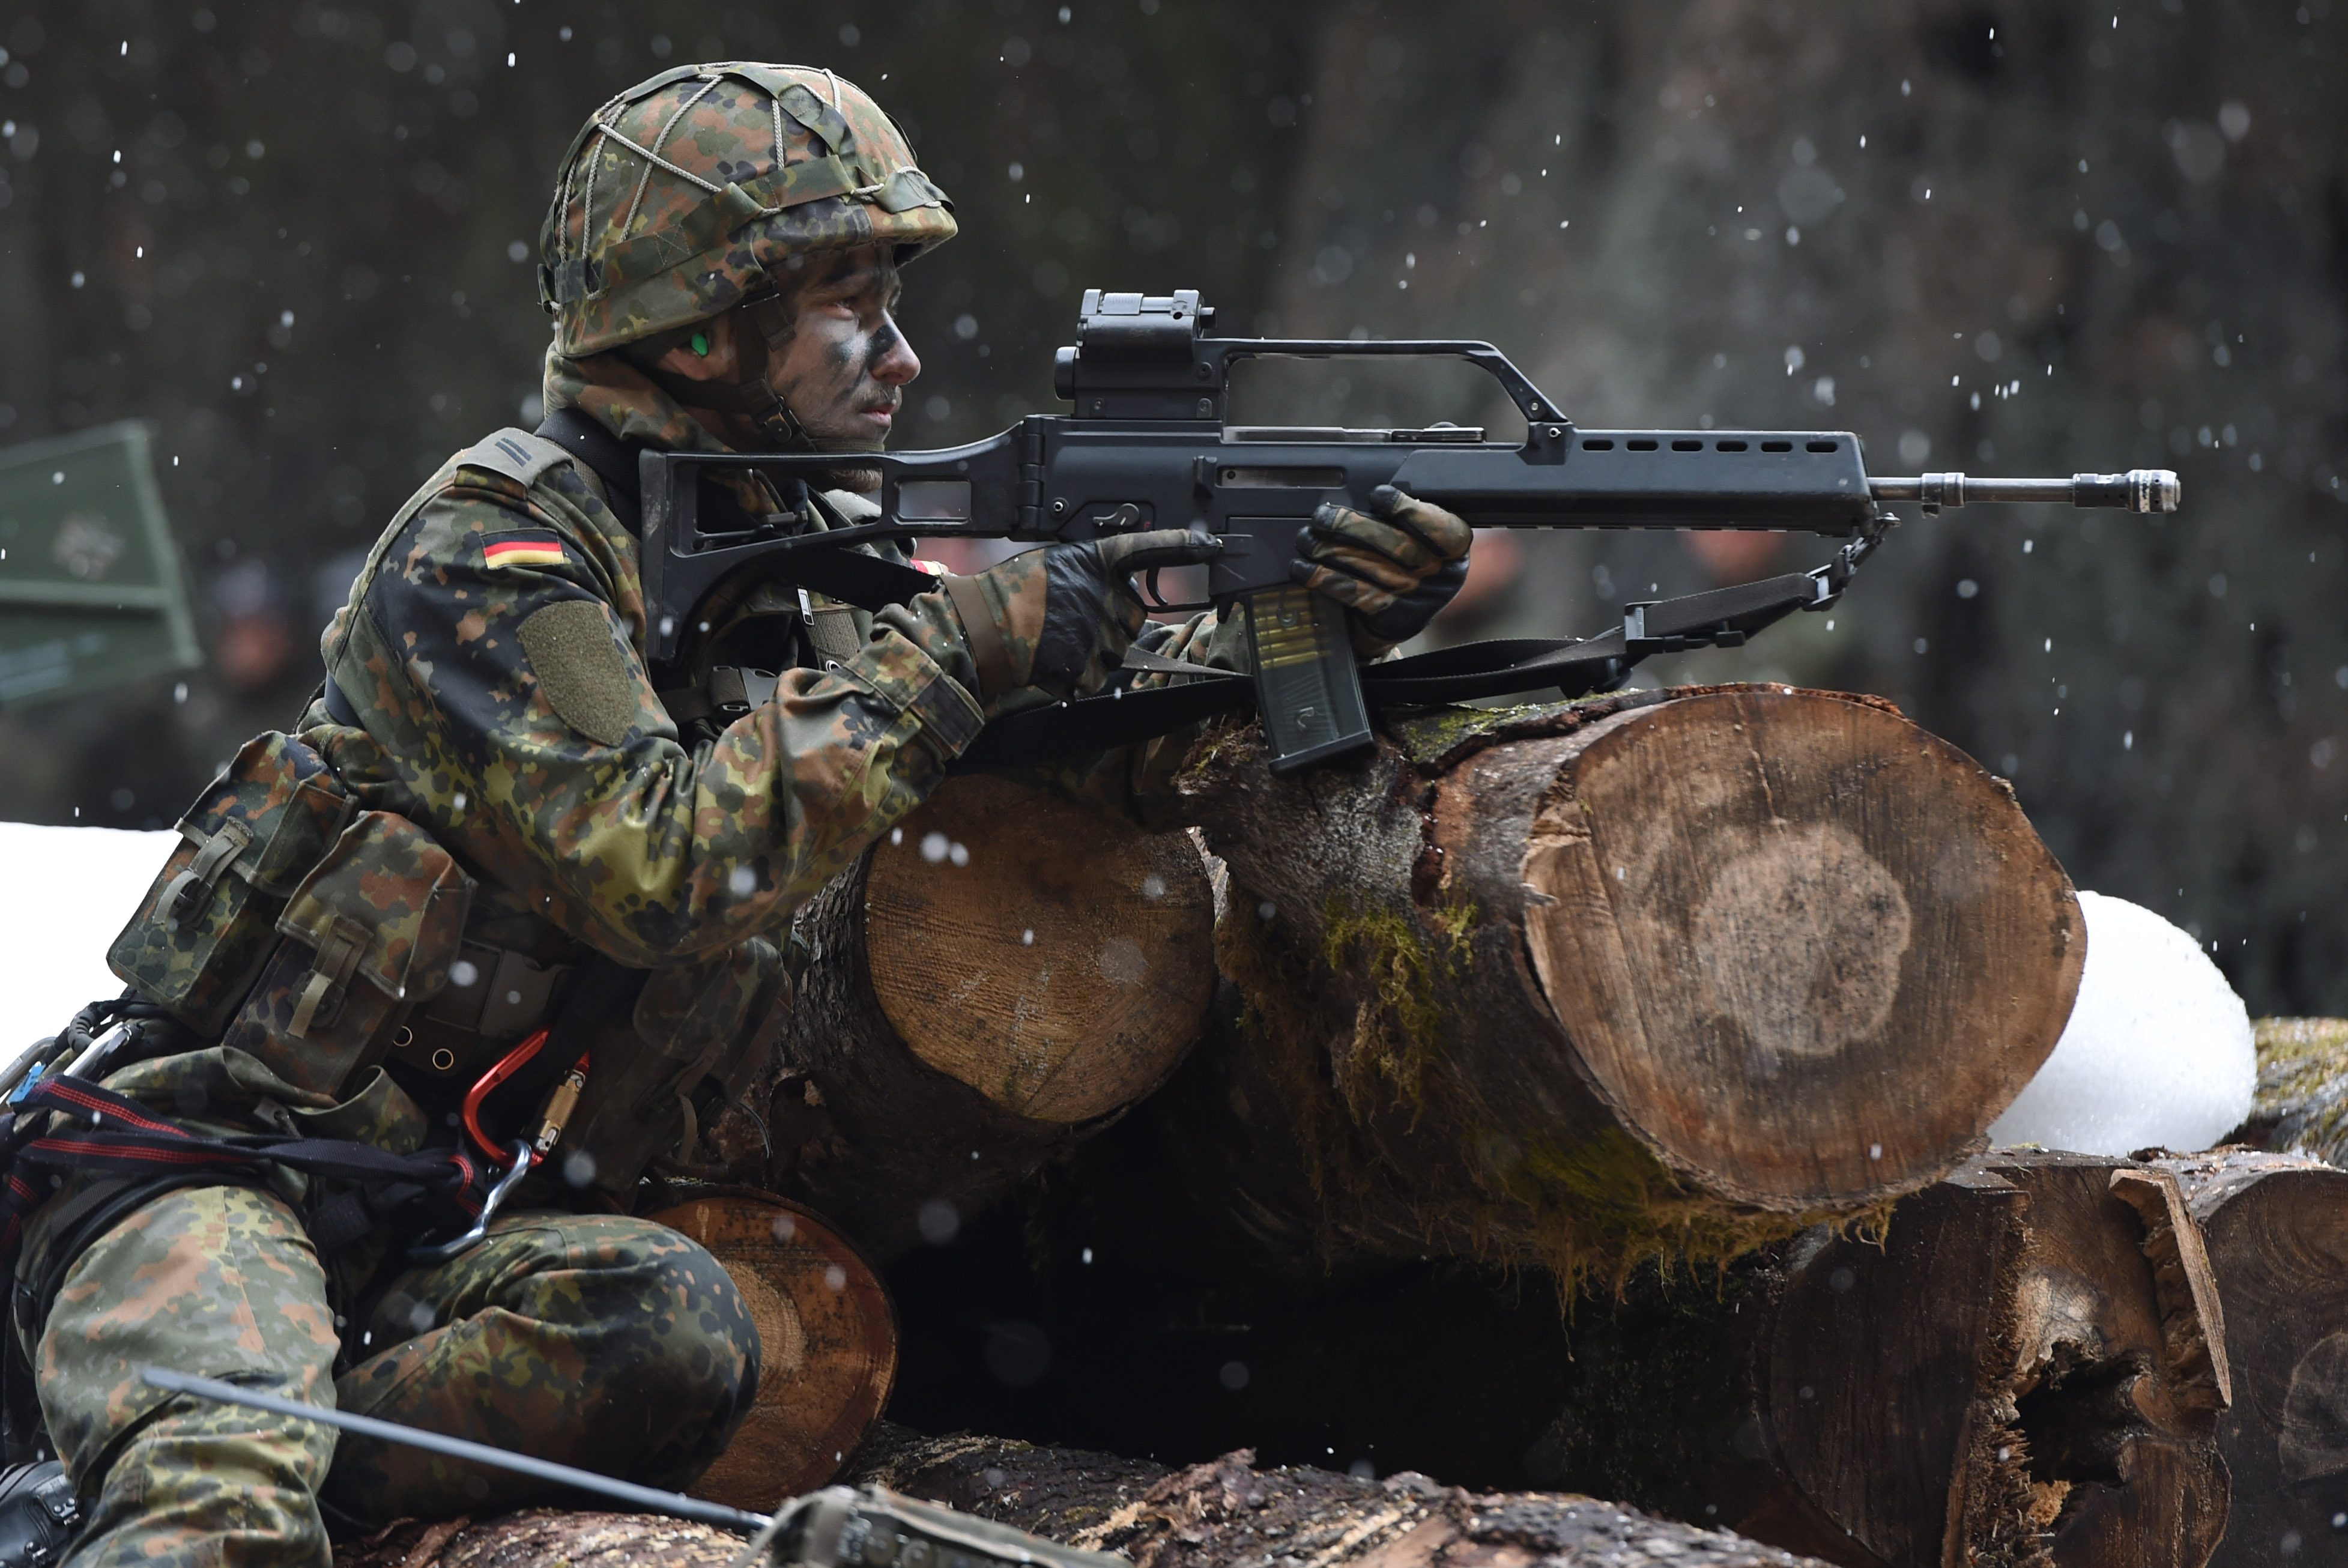 Germany's armed forces are in bad shape, report finds